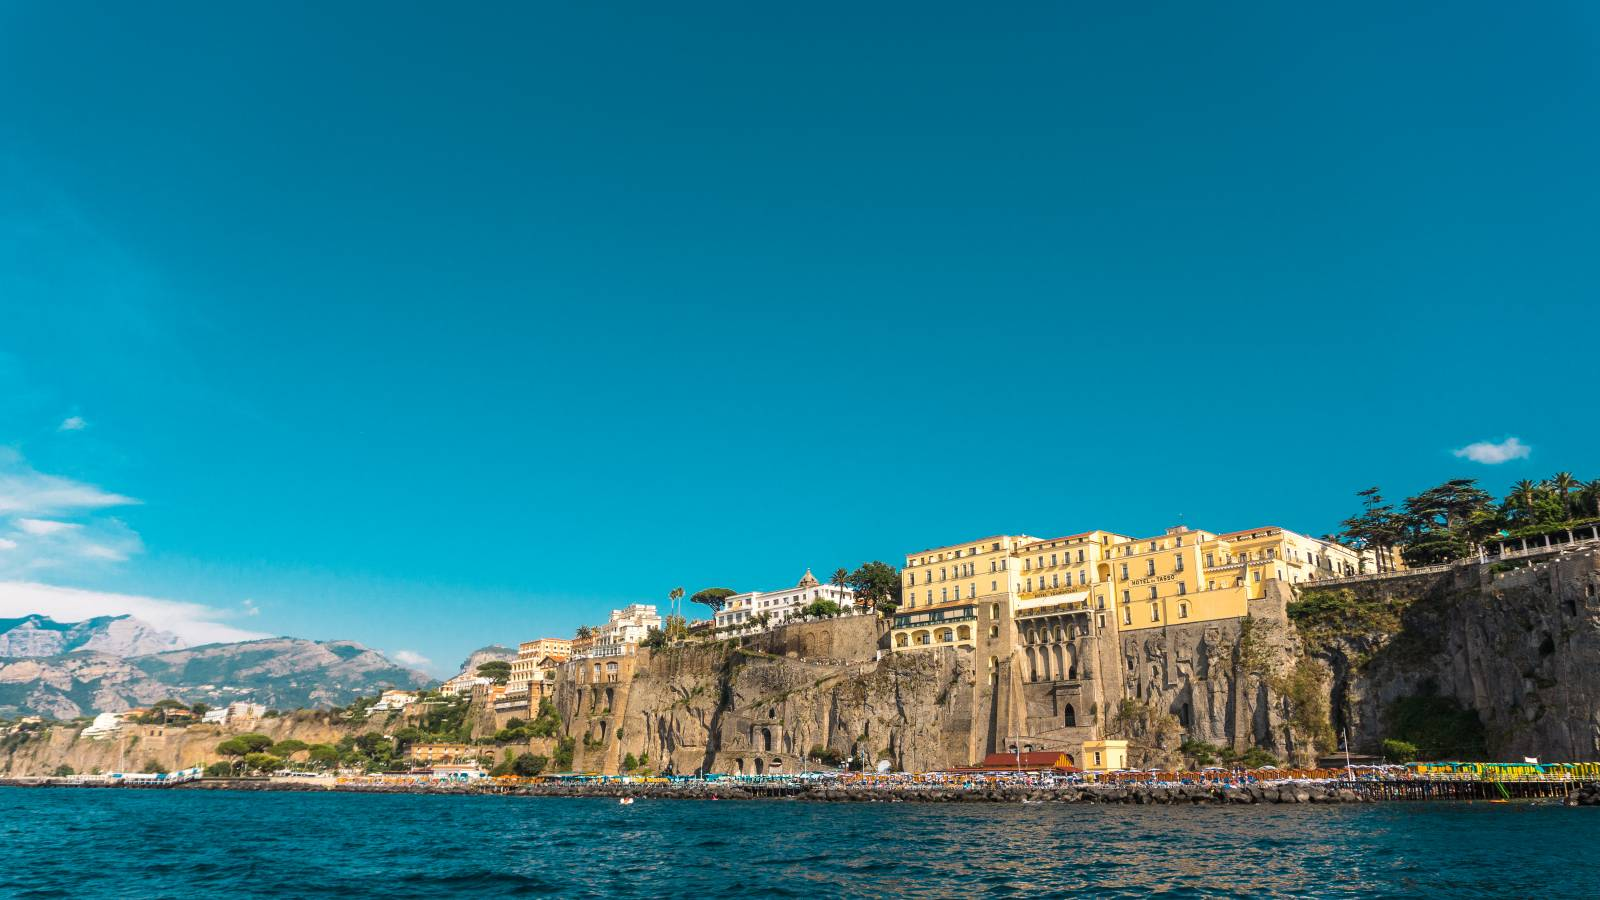 The Top 10 Most Luxurious Things To Do In The Amalfi Coast - Sorrento